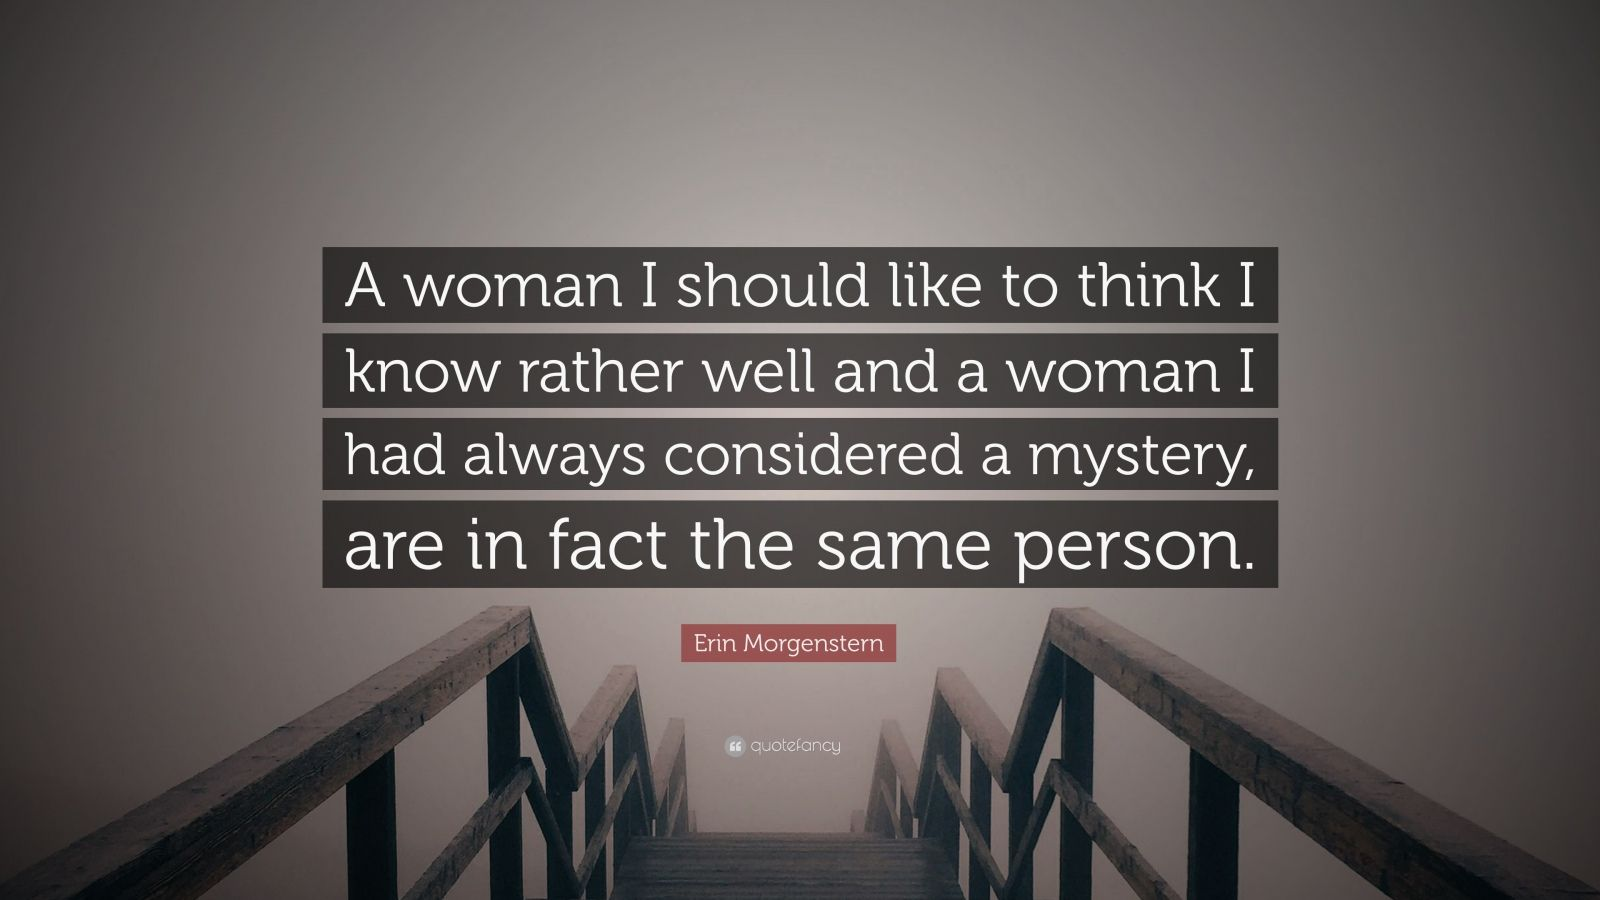 """Erin Morgenstern Quote: """"A woman I should like to think I know rather well and a woman I had always considered a mystery, are in fact the same person."""""""